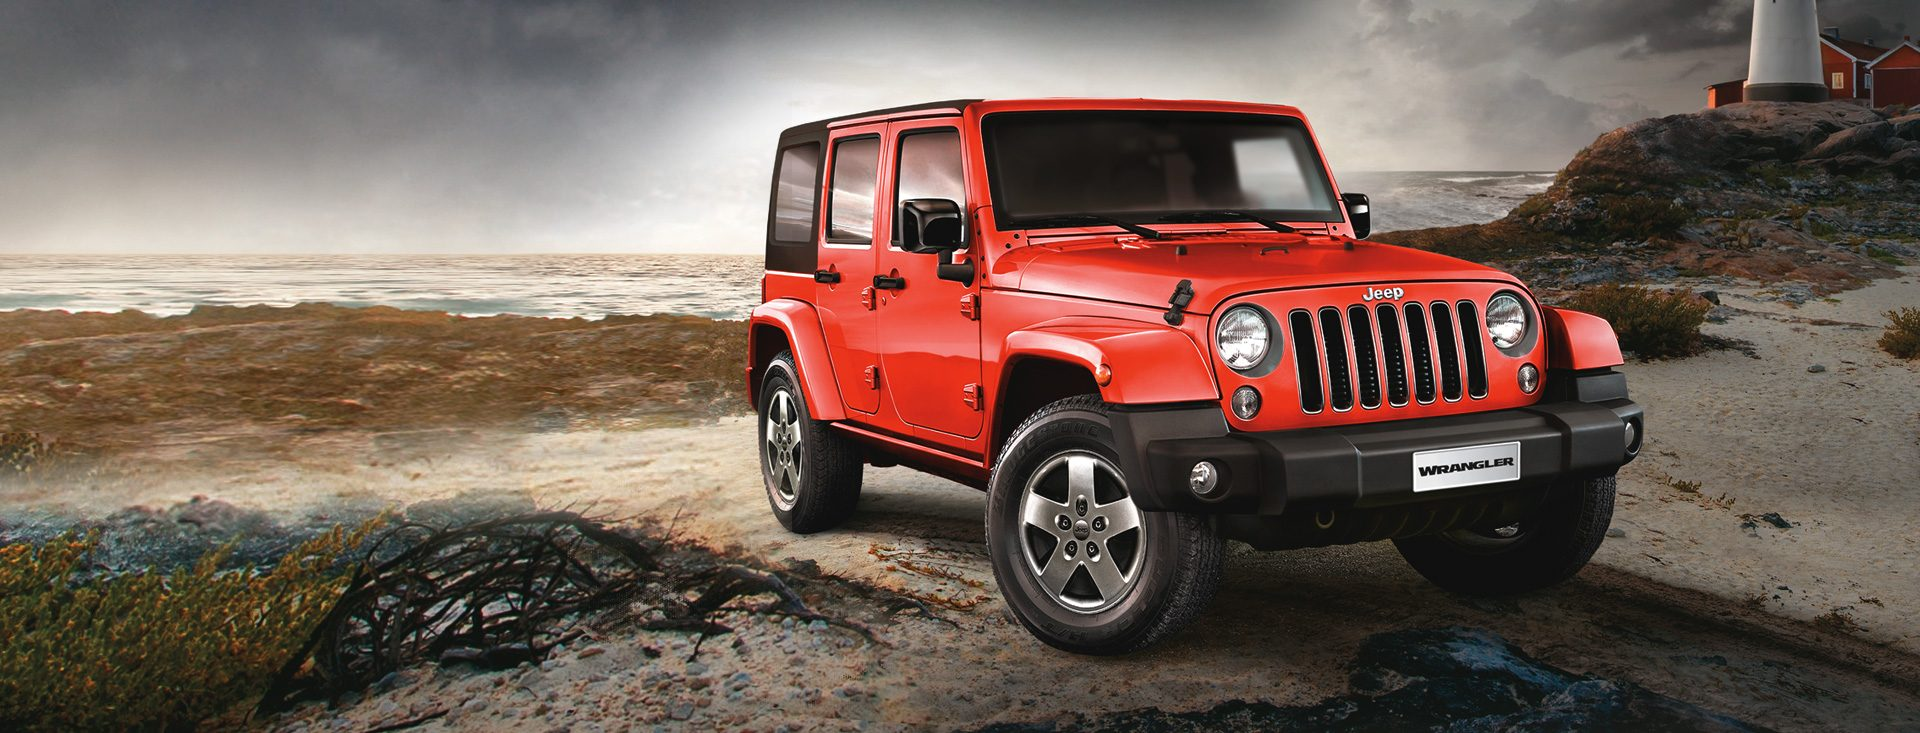 Jeep Wrangler Unlimited India Jk Tweeter